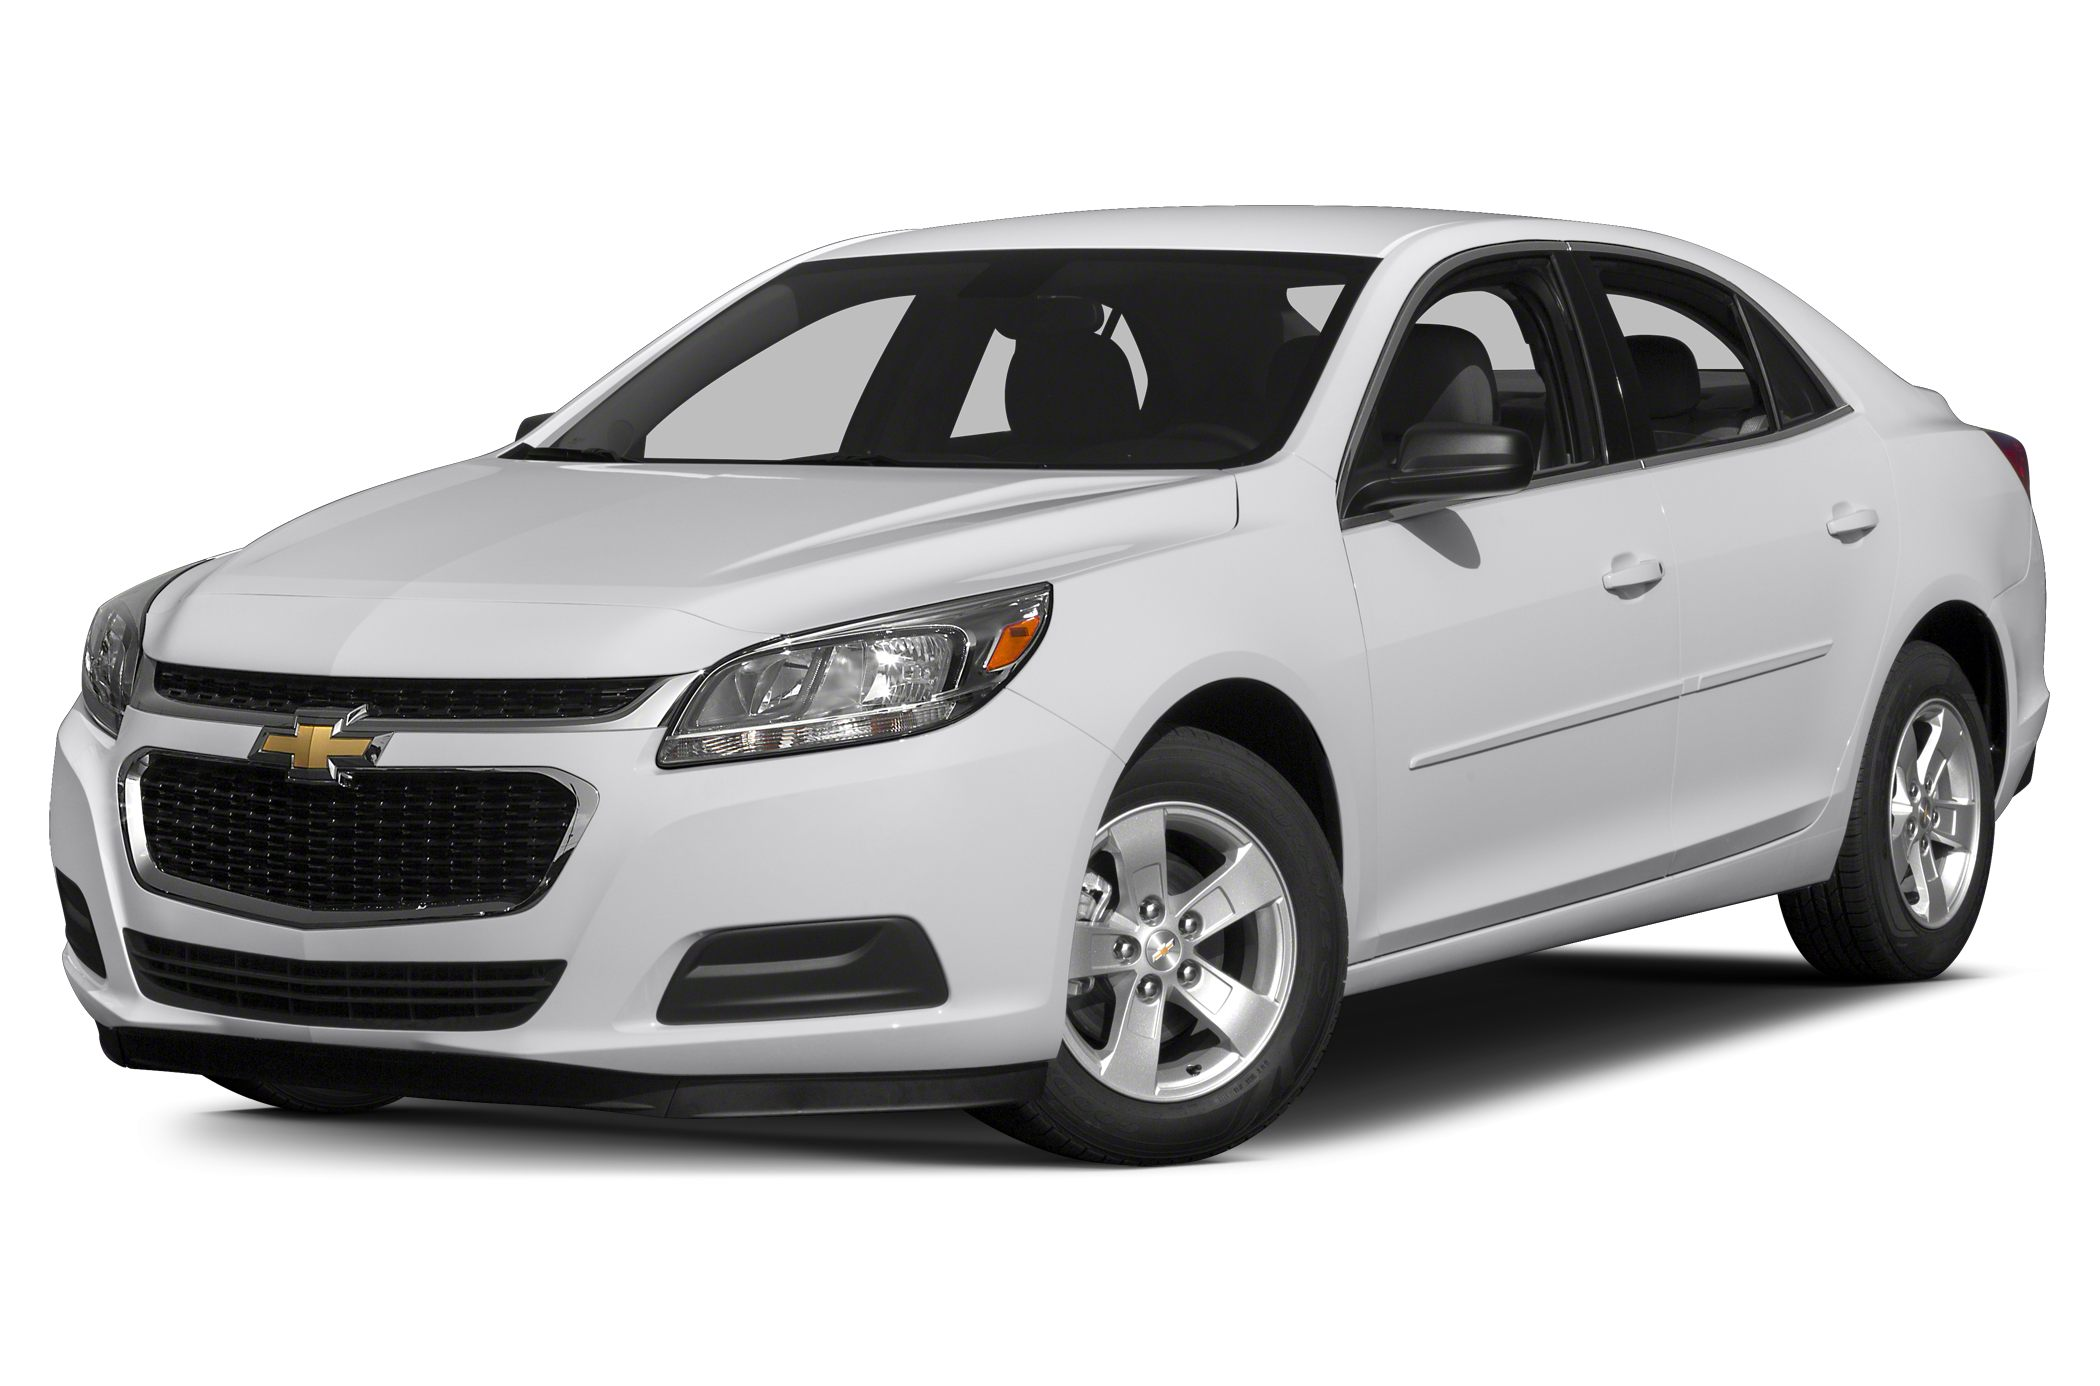 2015 Chevrolet Malibu 2LT Sedan for sale in Westminster for $28,715 with 6 miles